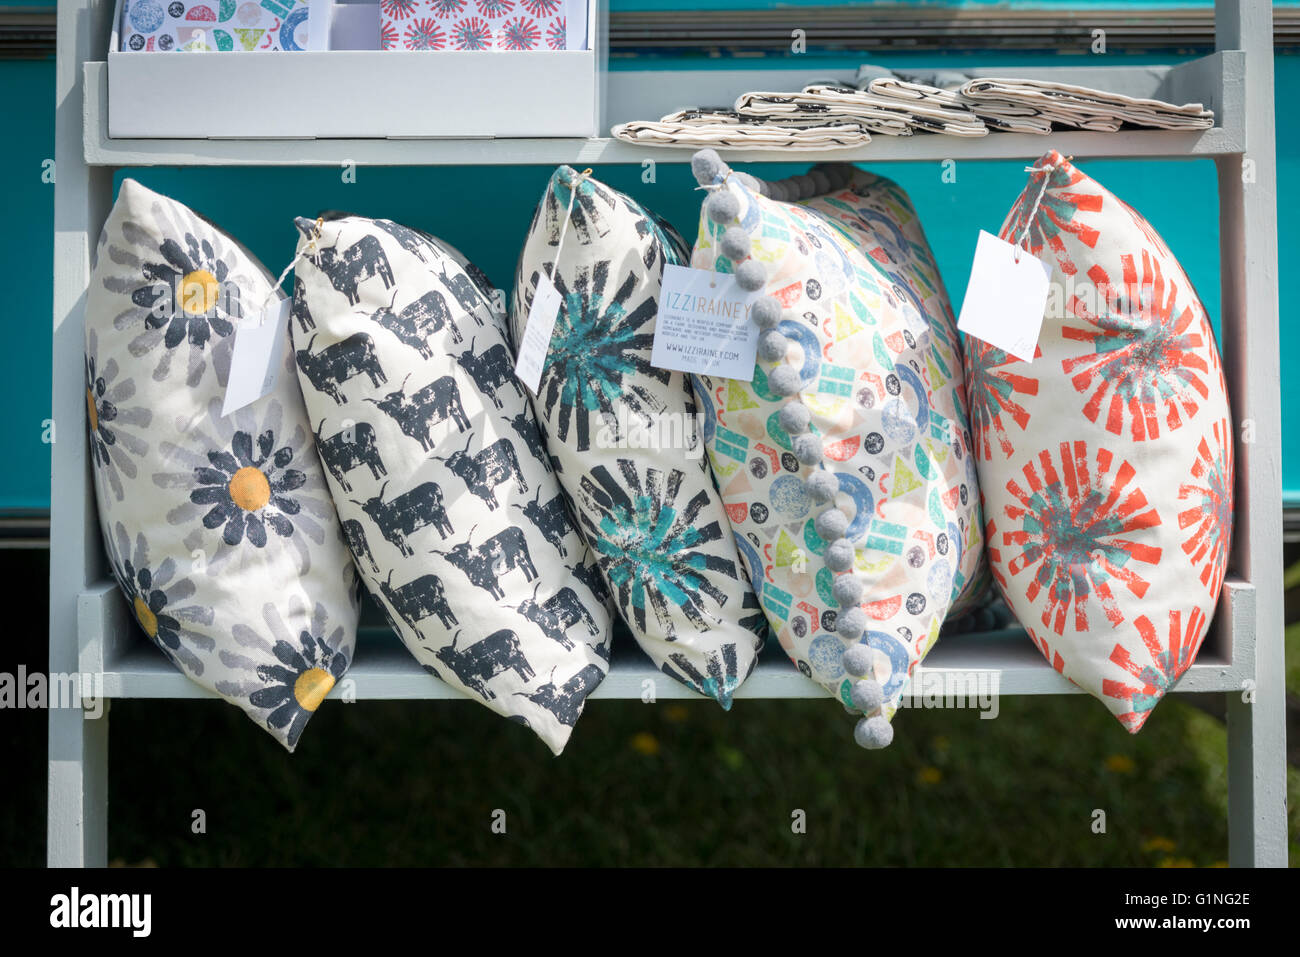 Cushions for sale on a stall - Stock Image